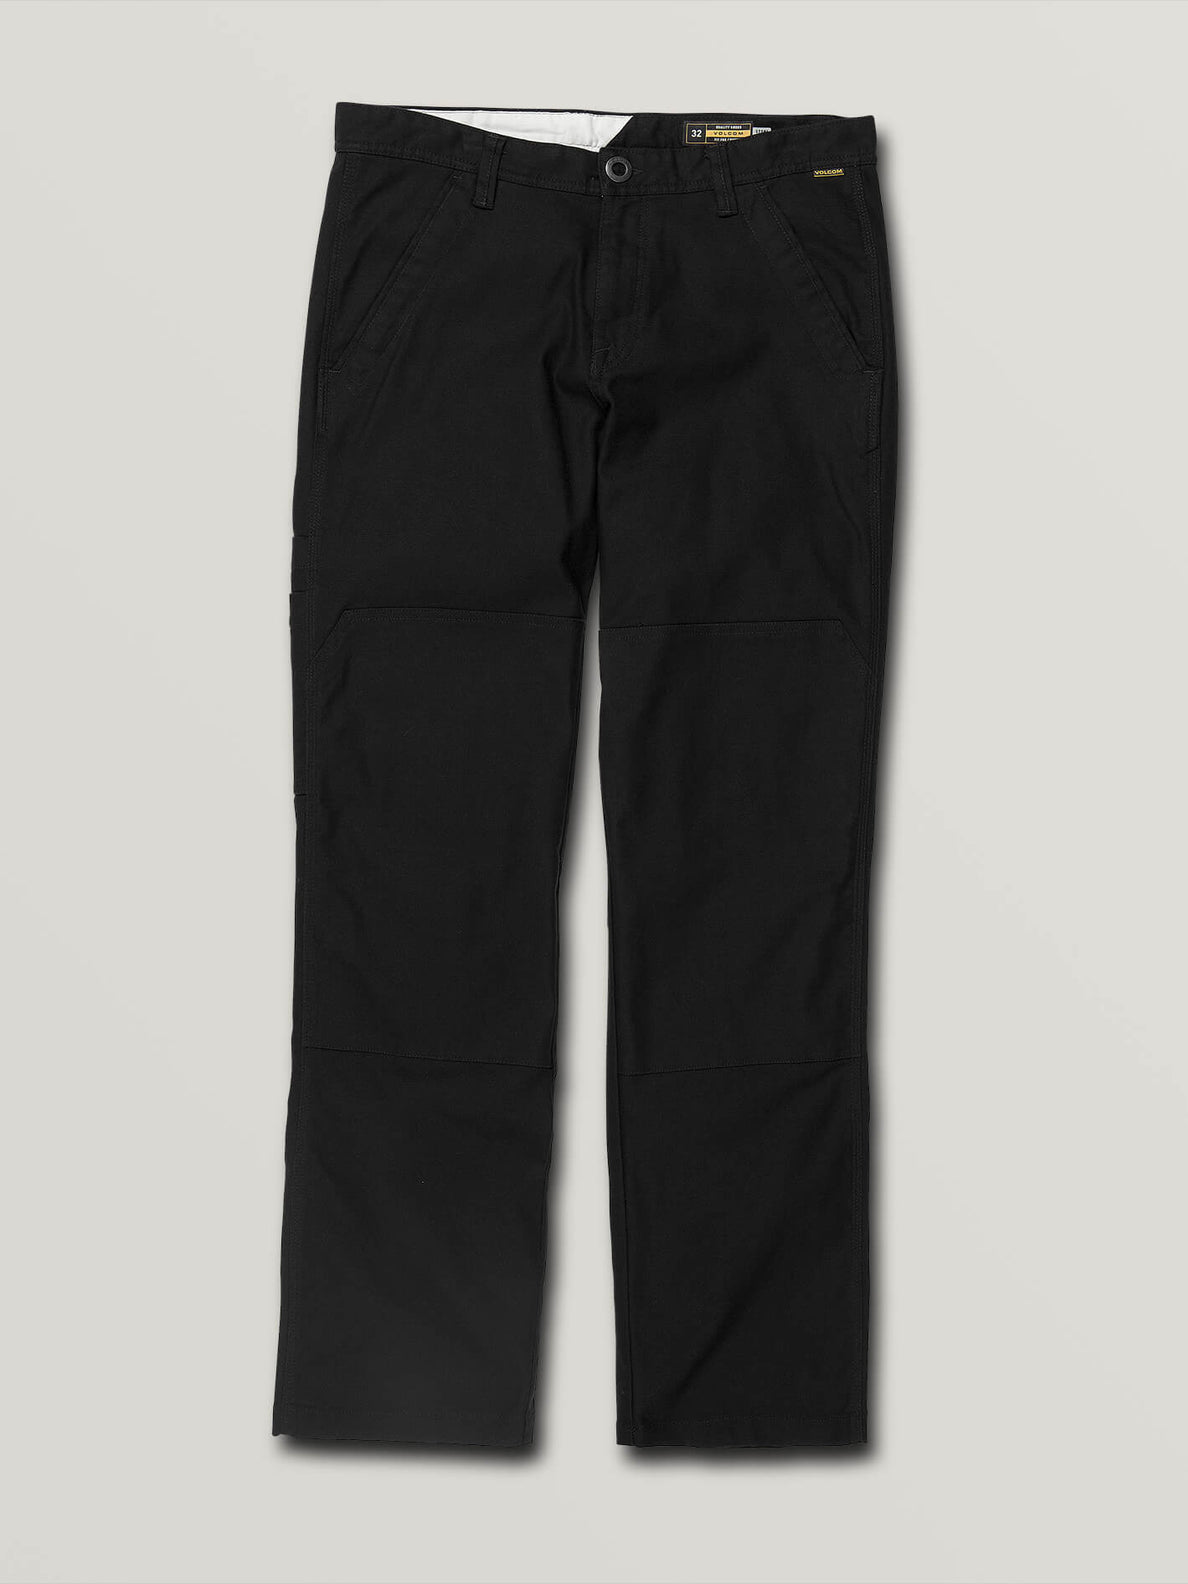 Nailer Canvas Pants - Black (A1131902_BLK) [F]